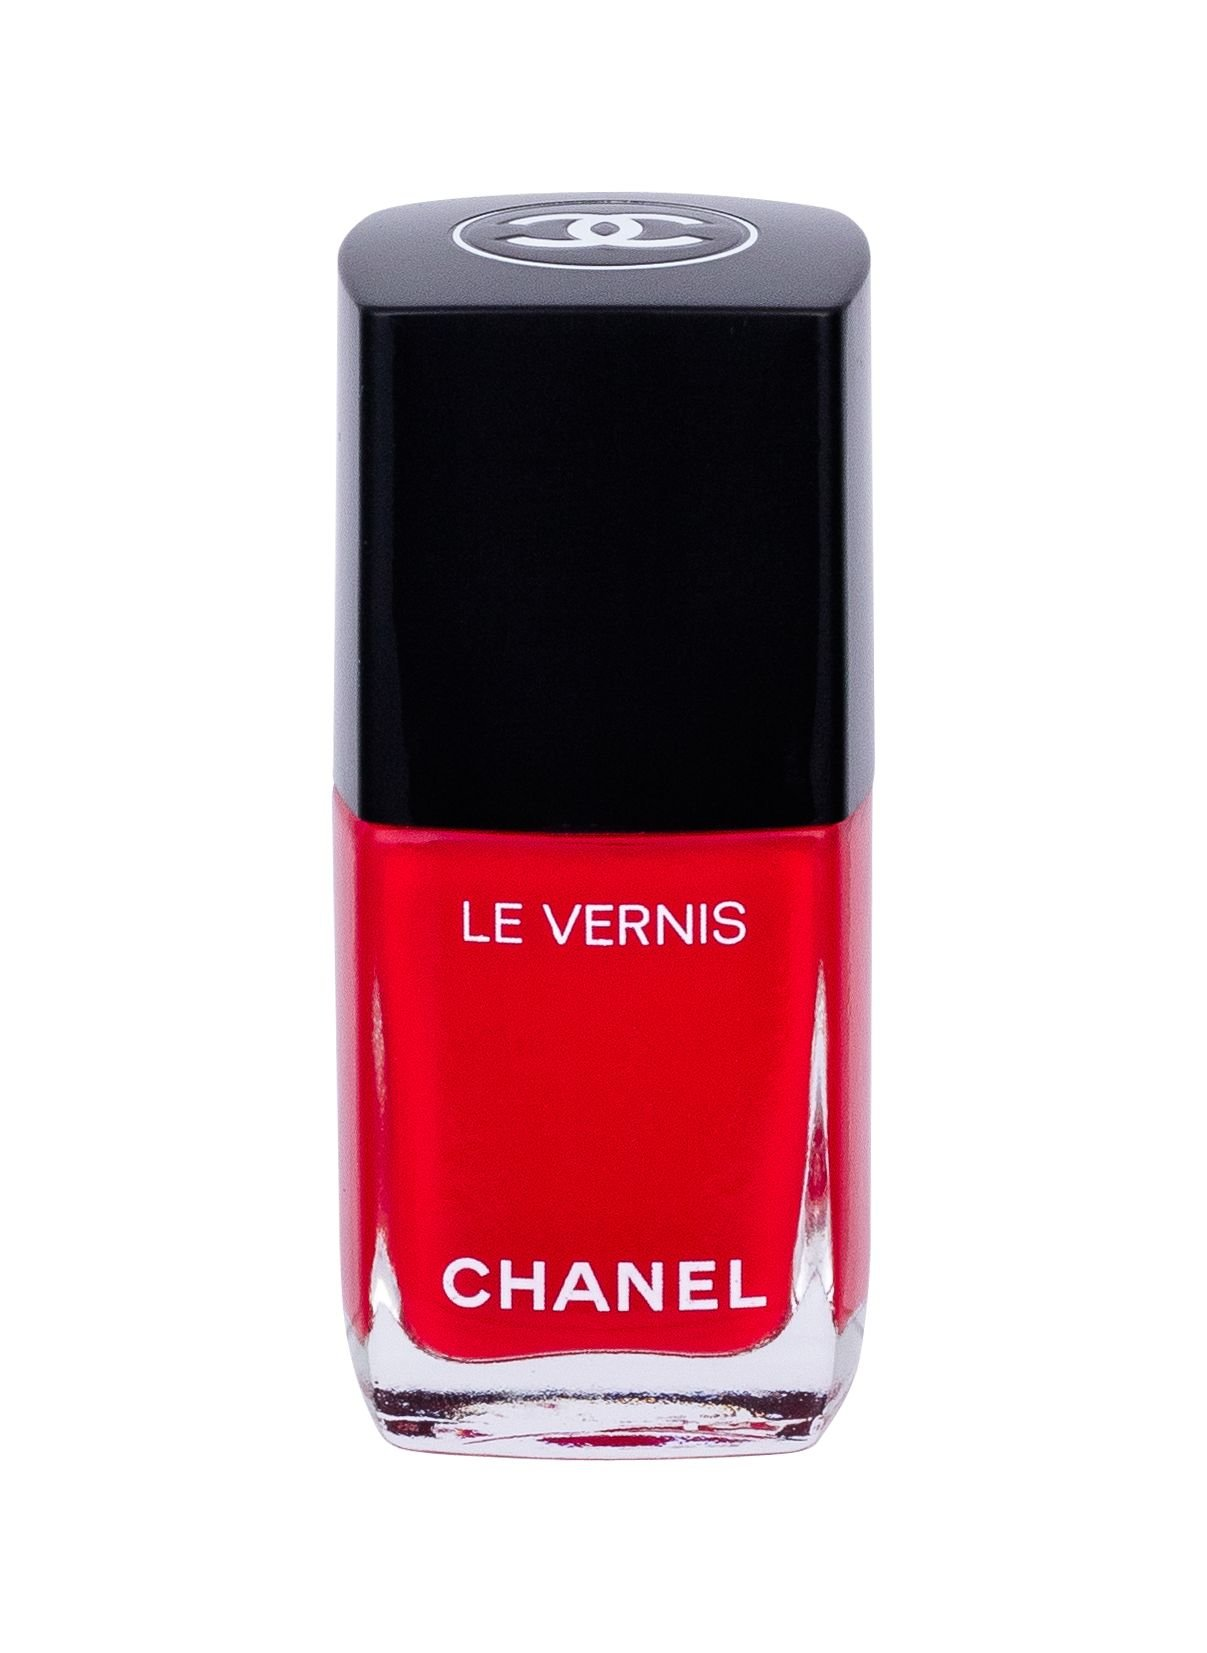 Chanel Le Vernis Nail Polish 13ml 510 Gitane